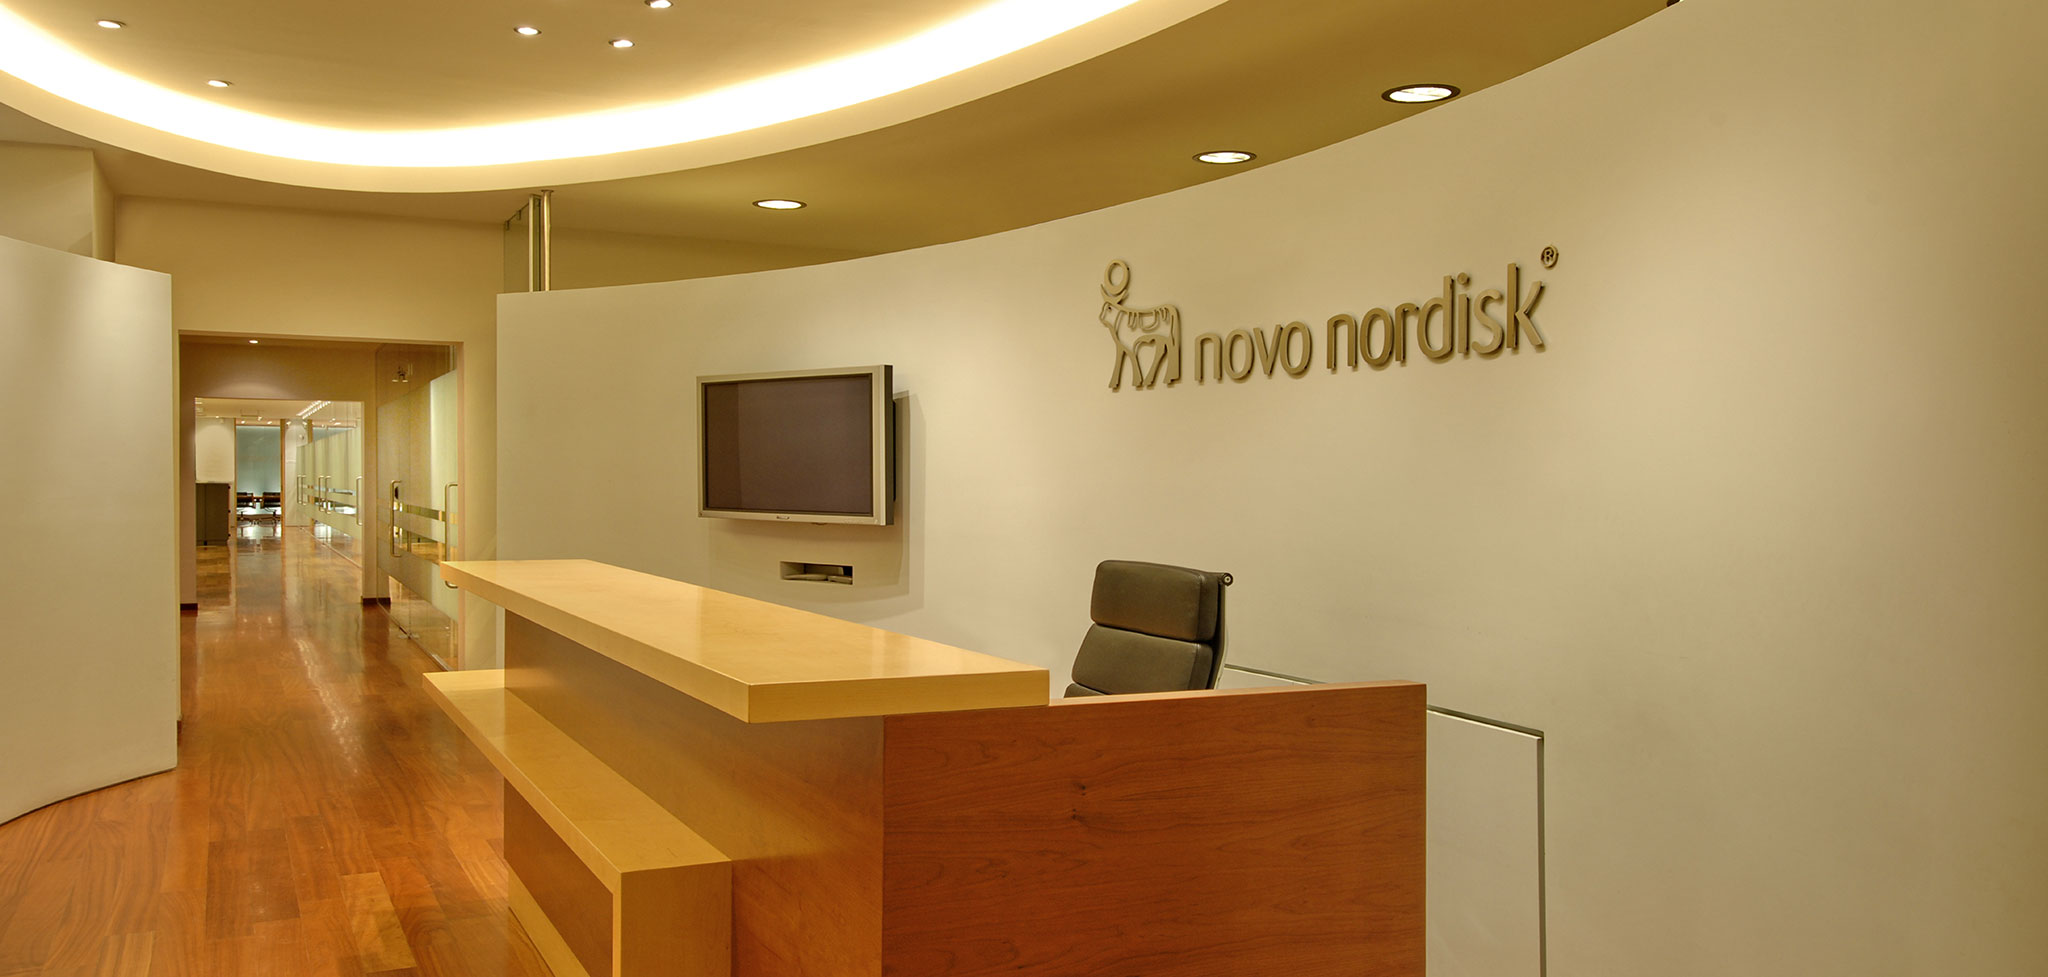 Offices of pharmaceutical company Novo Nordisk A/S